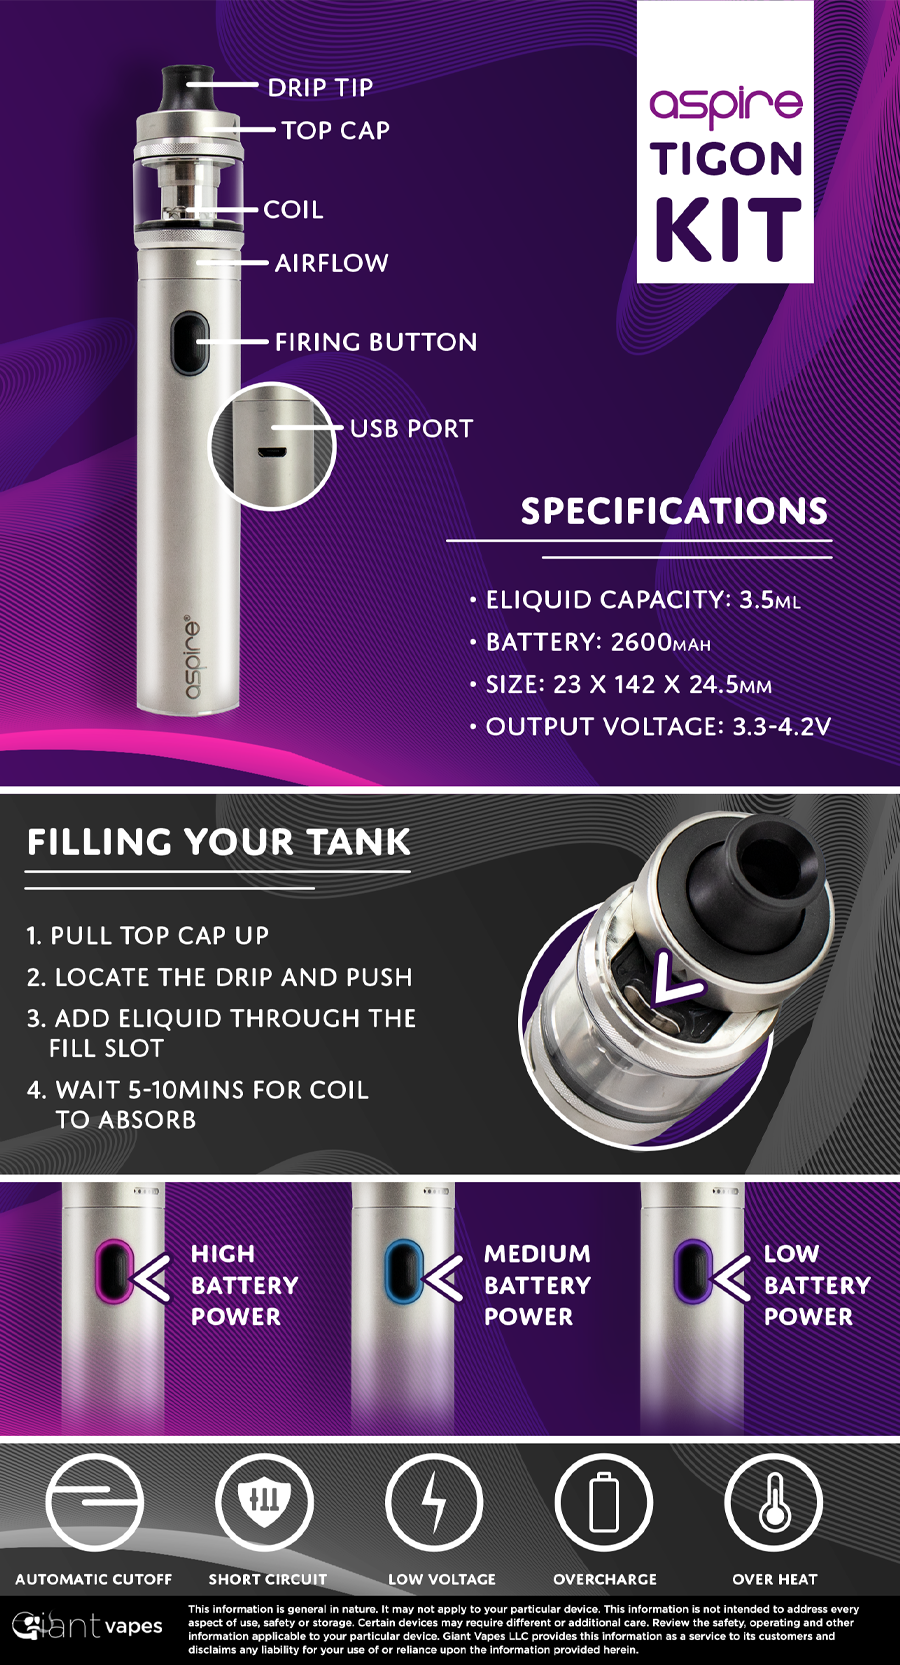 Aspire Tigon Kit Infographic